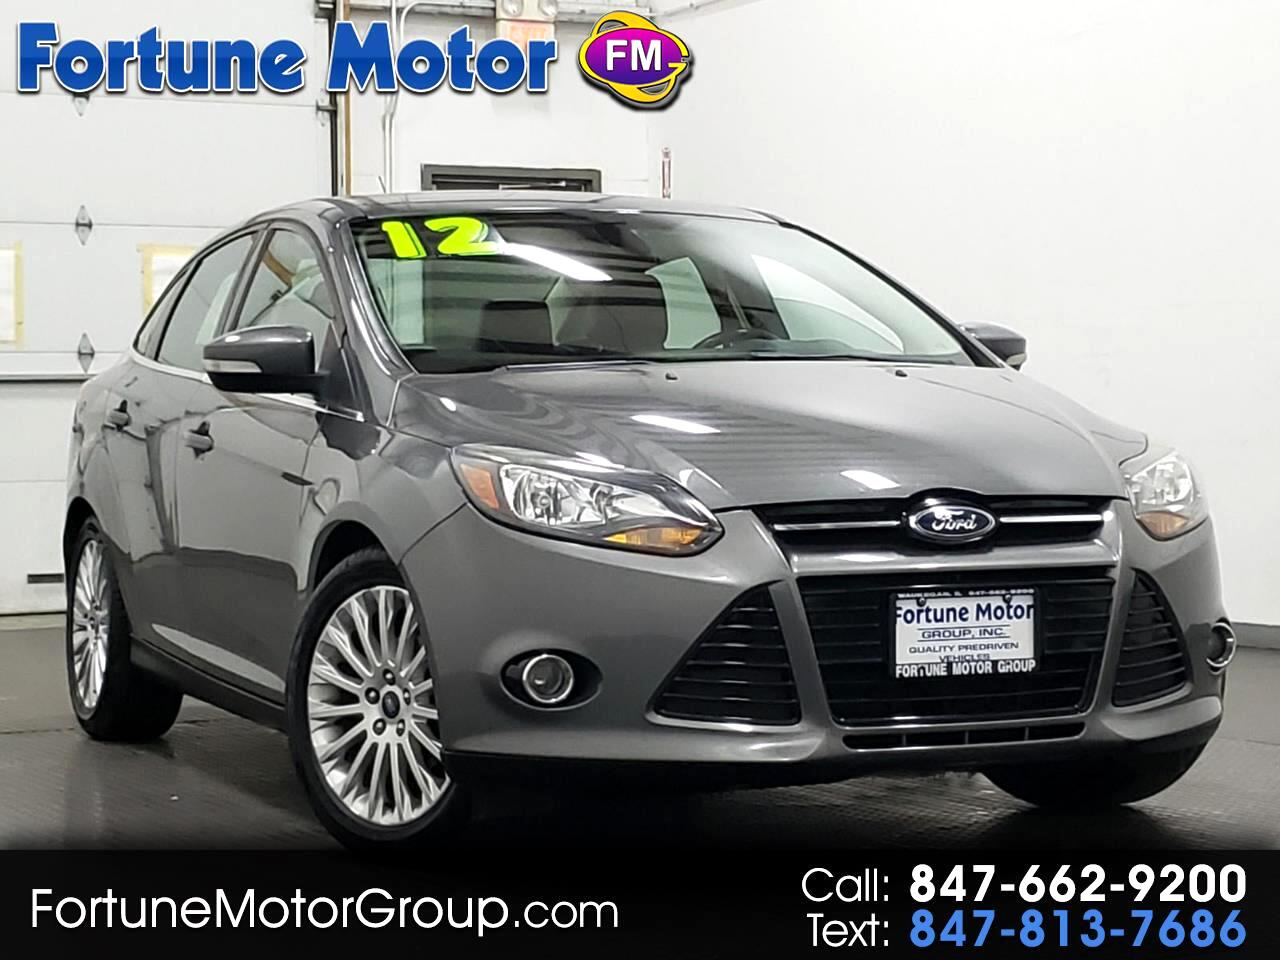 Ford Focus Titanium Sedan 2012